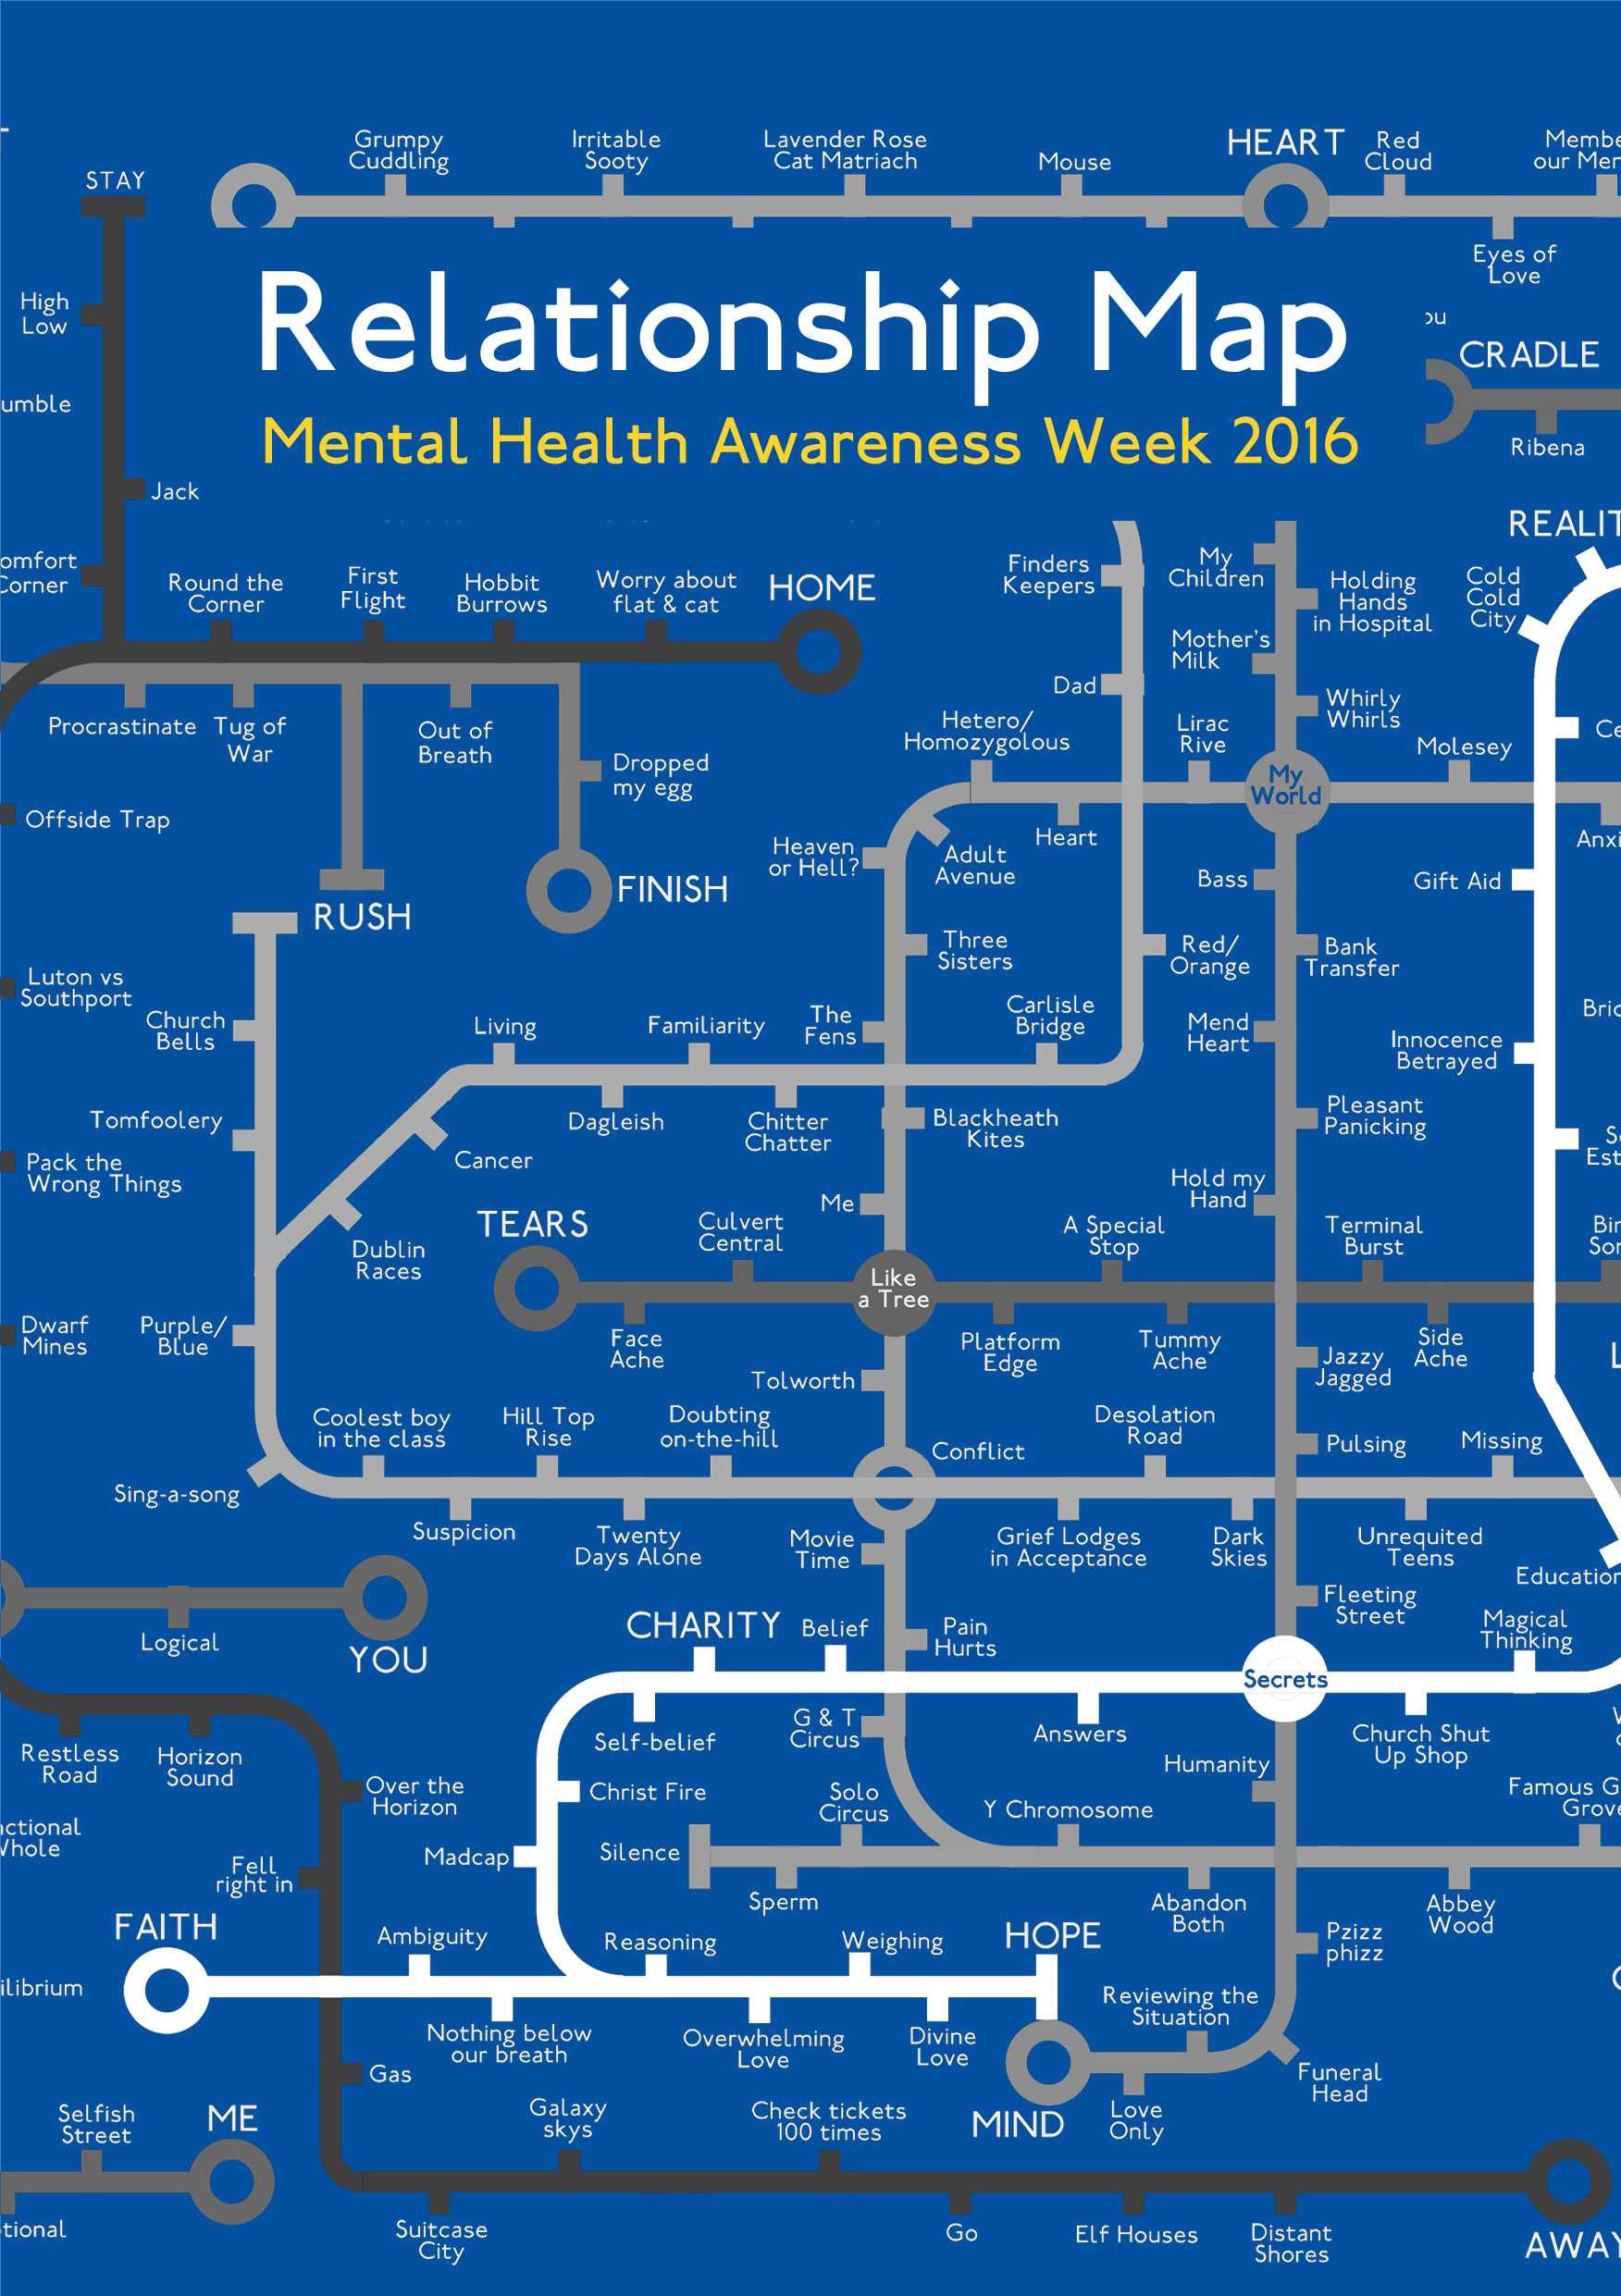 Relationship Map Mental Health Awareness Week 2016